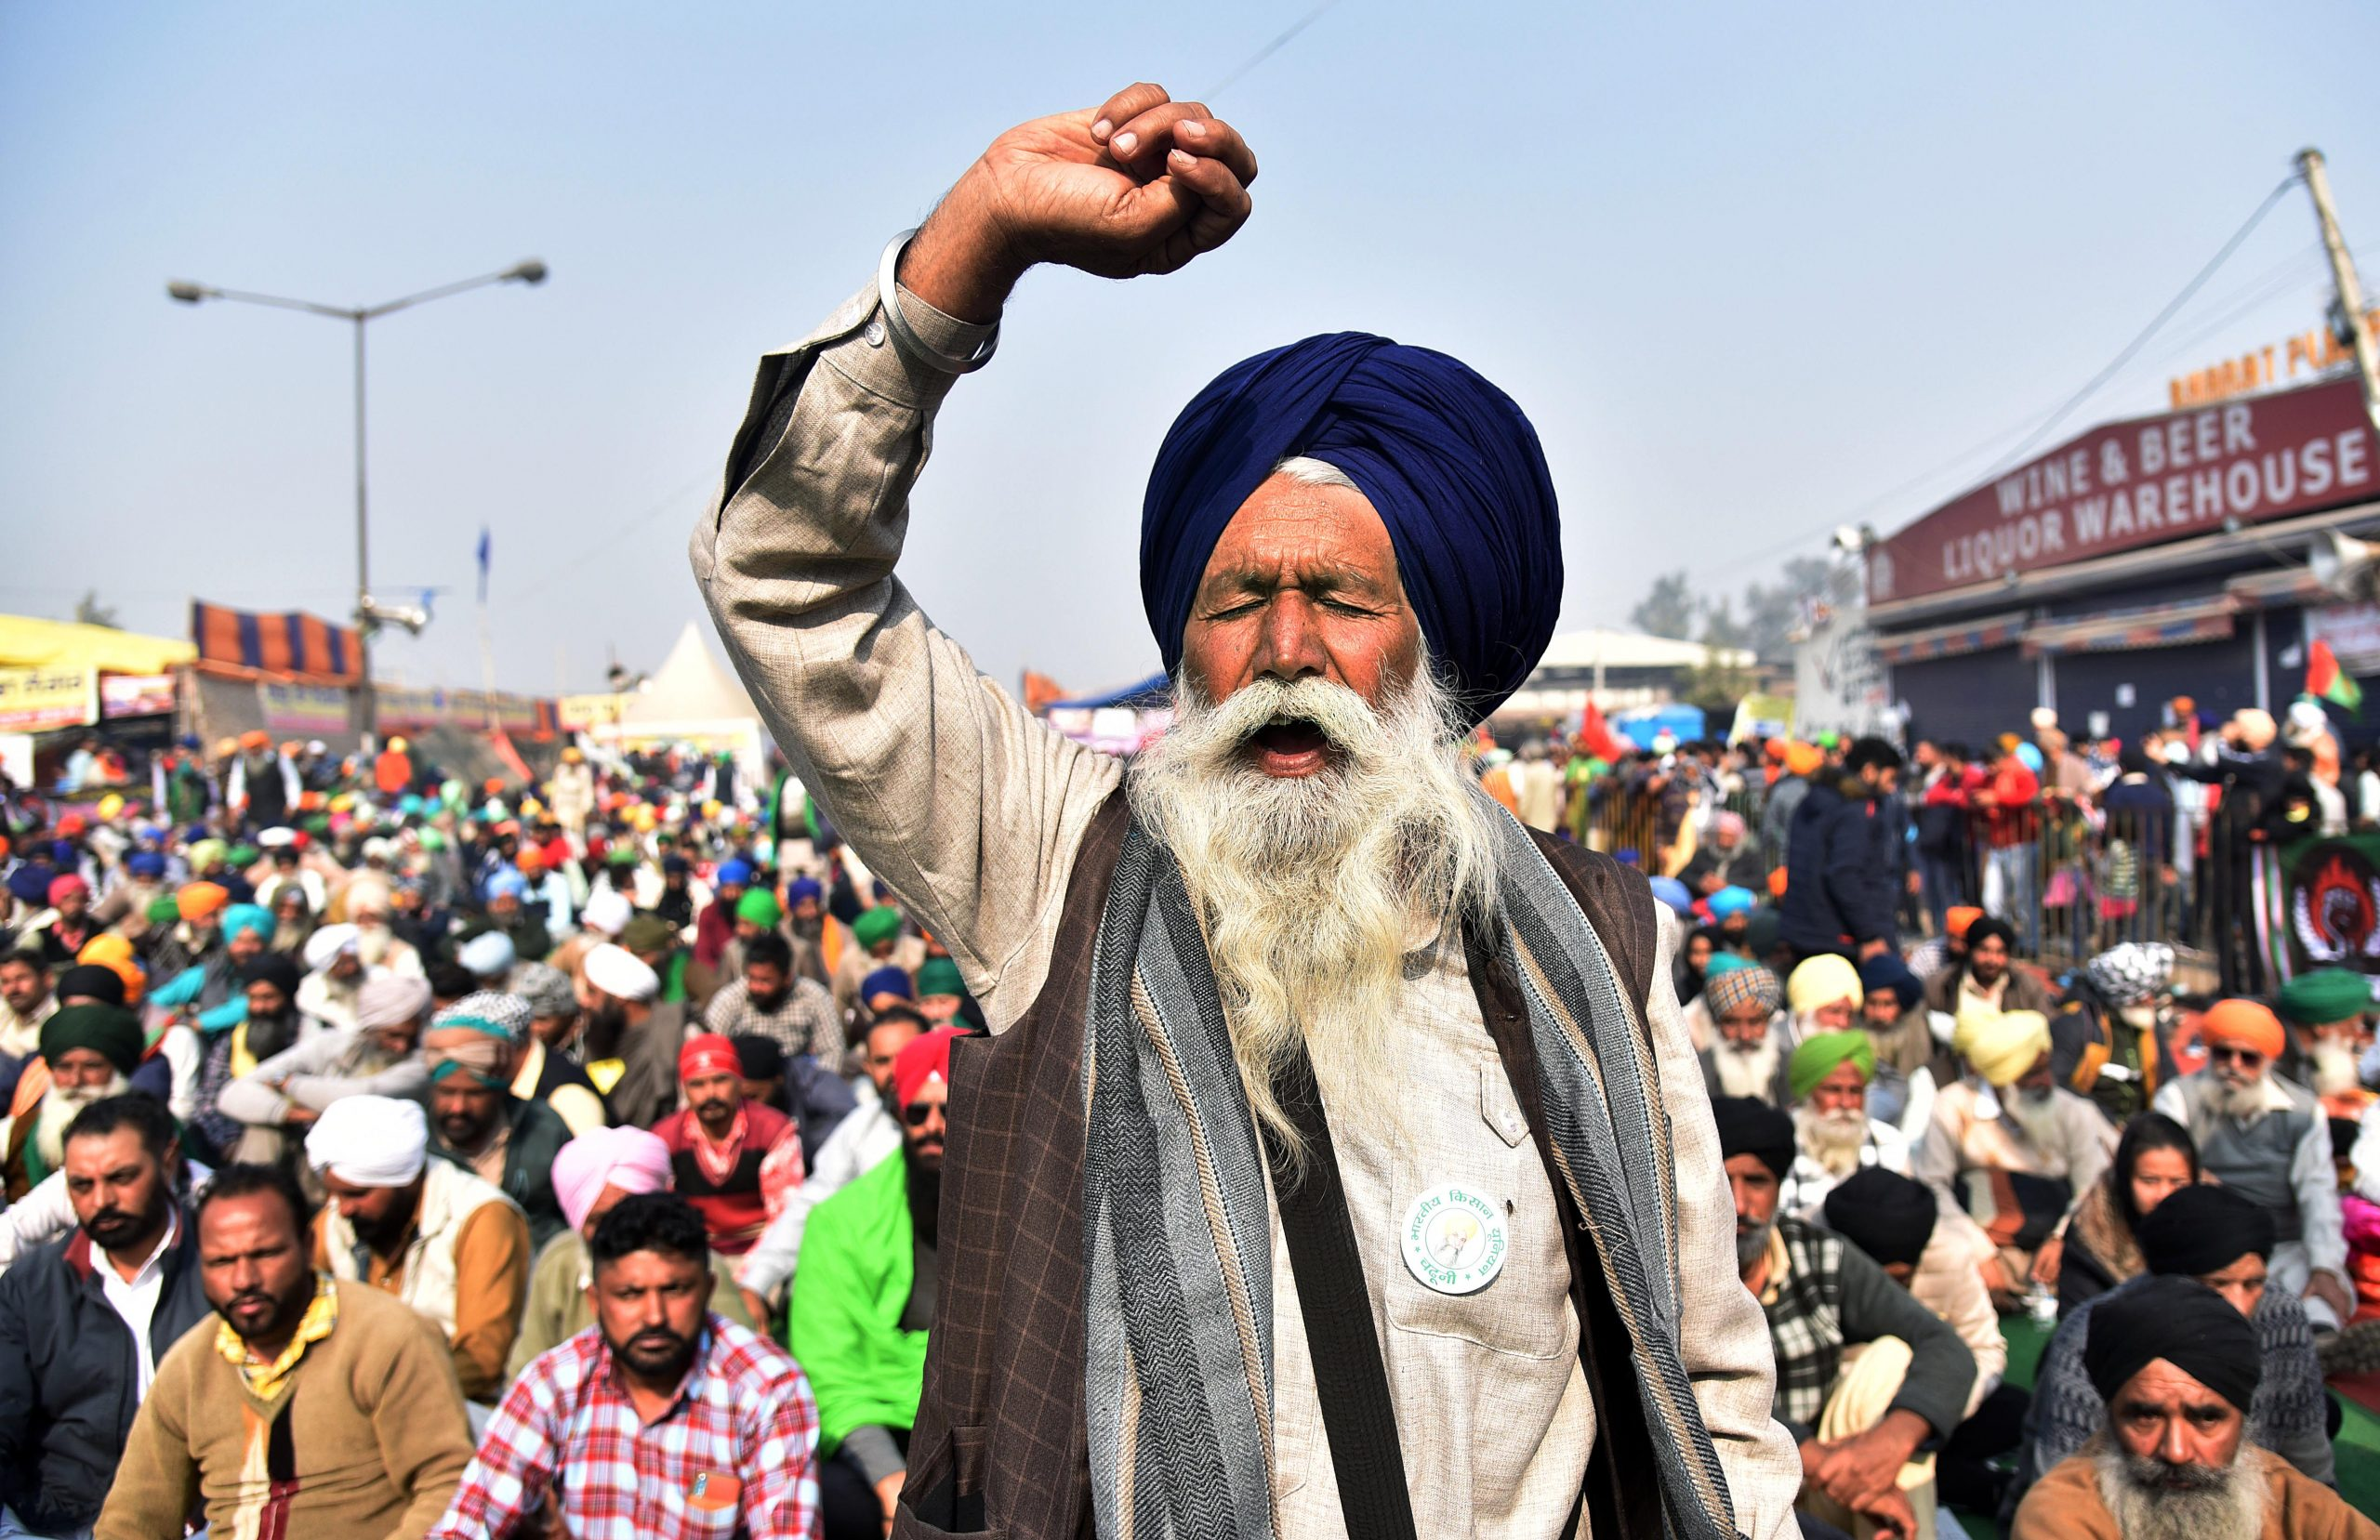 LIVE: Farmers' insist continues amid freezing temperatures in Delhi-NCR